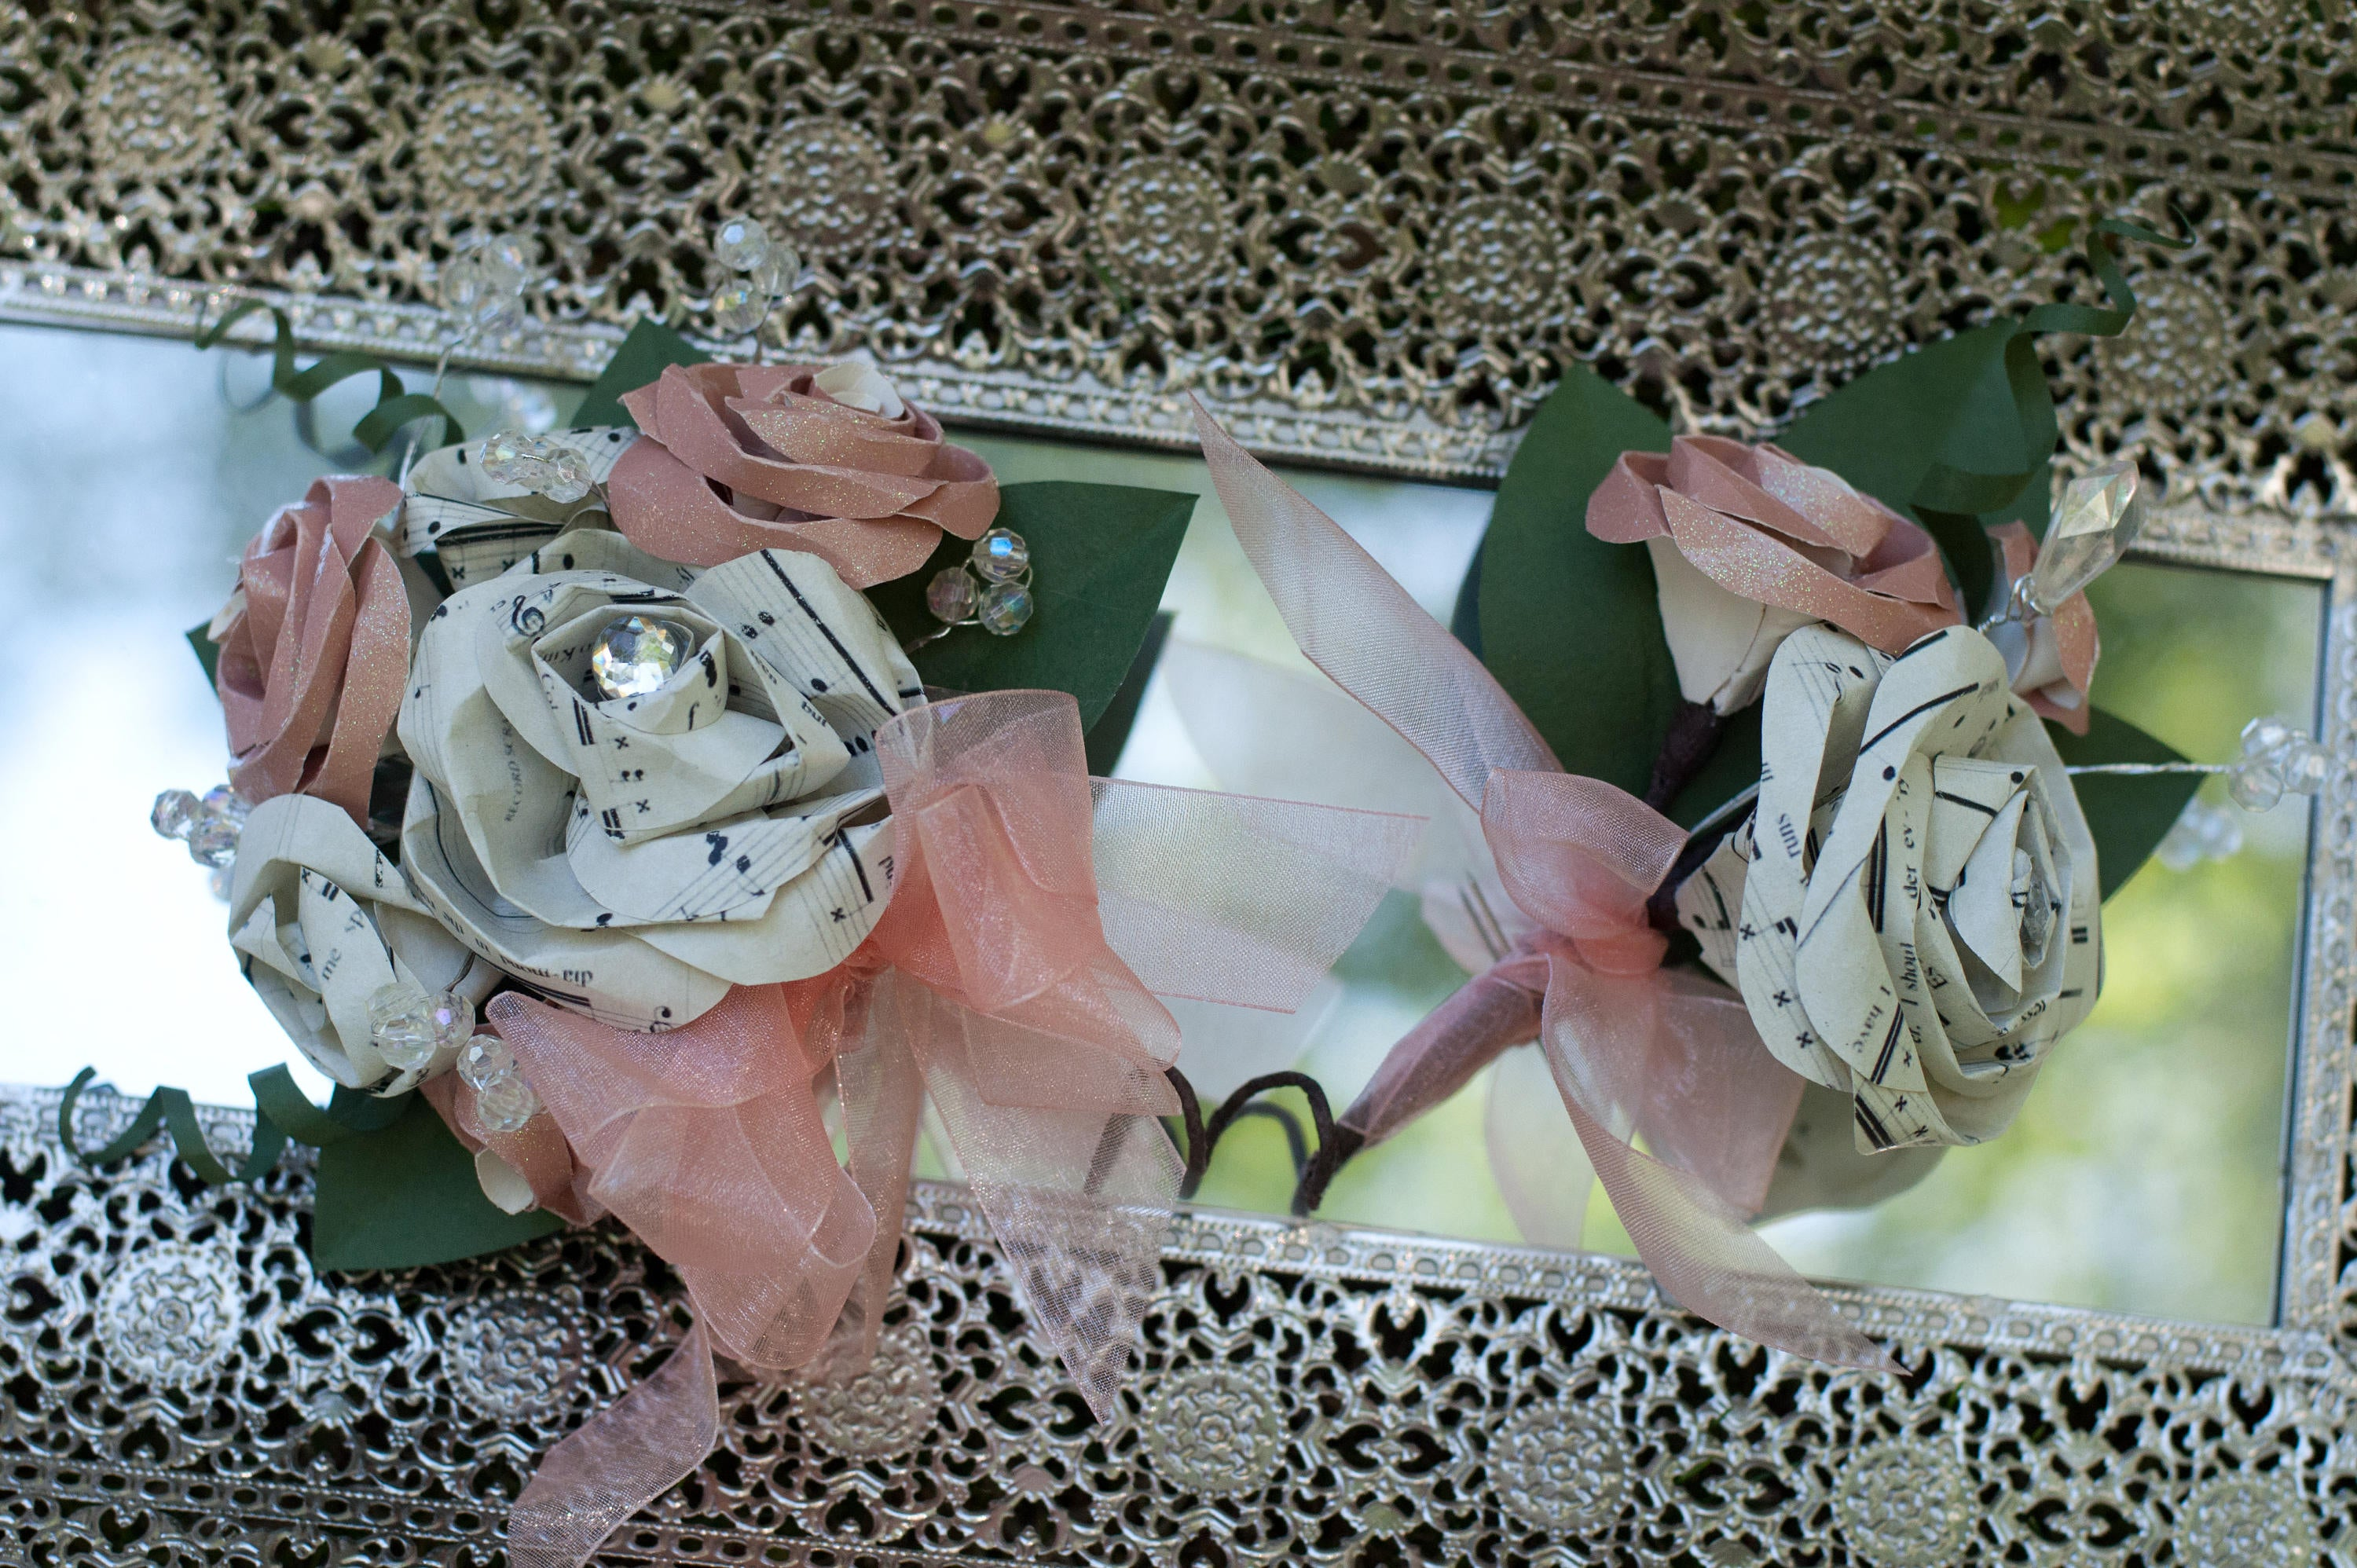 peach colored prom corsage and boutonniere set made with paper and bling